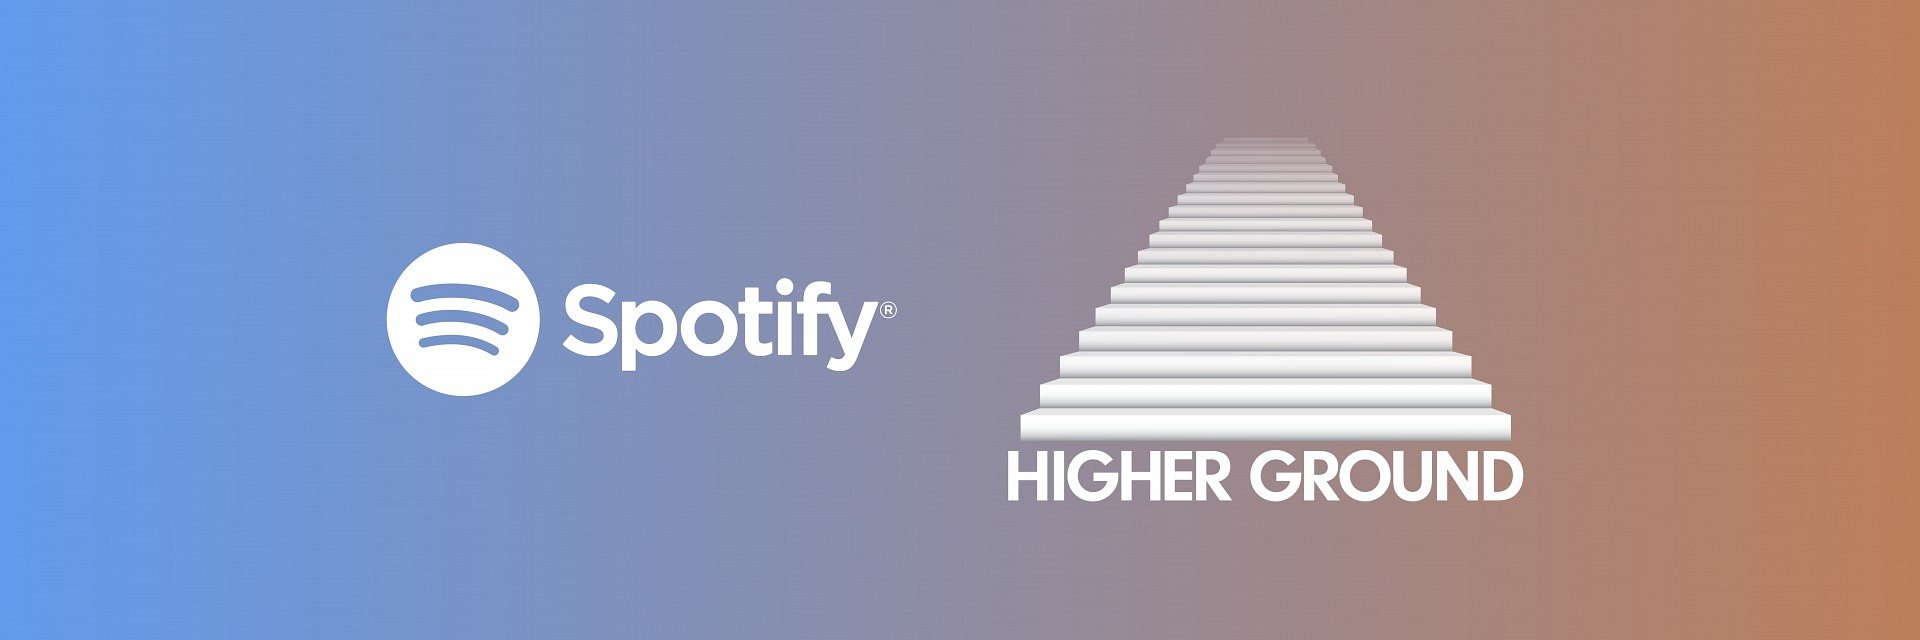 Higher Ground announces partnership with Spotify to produce podcasts